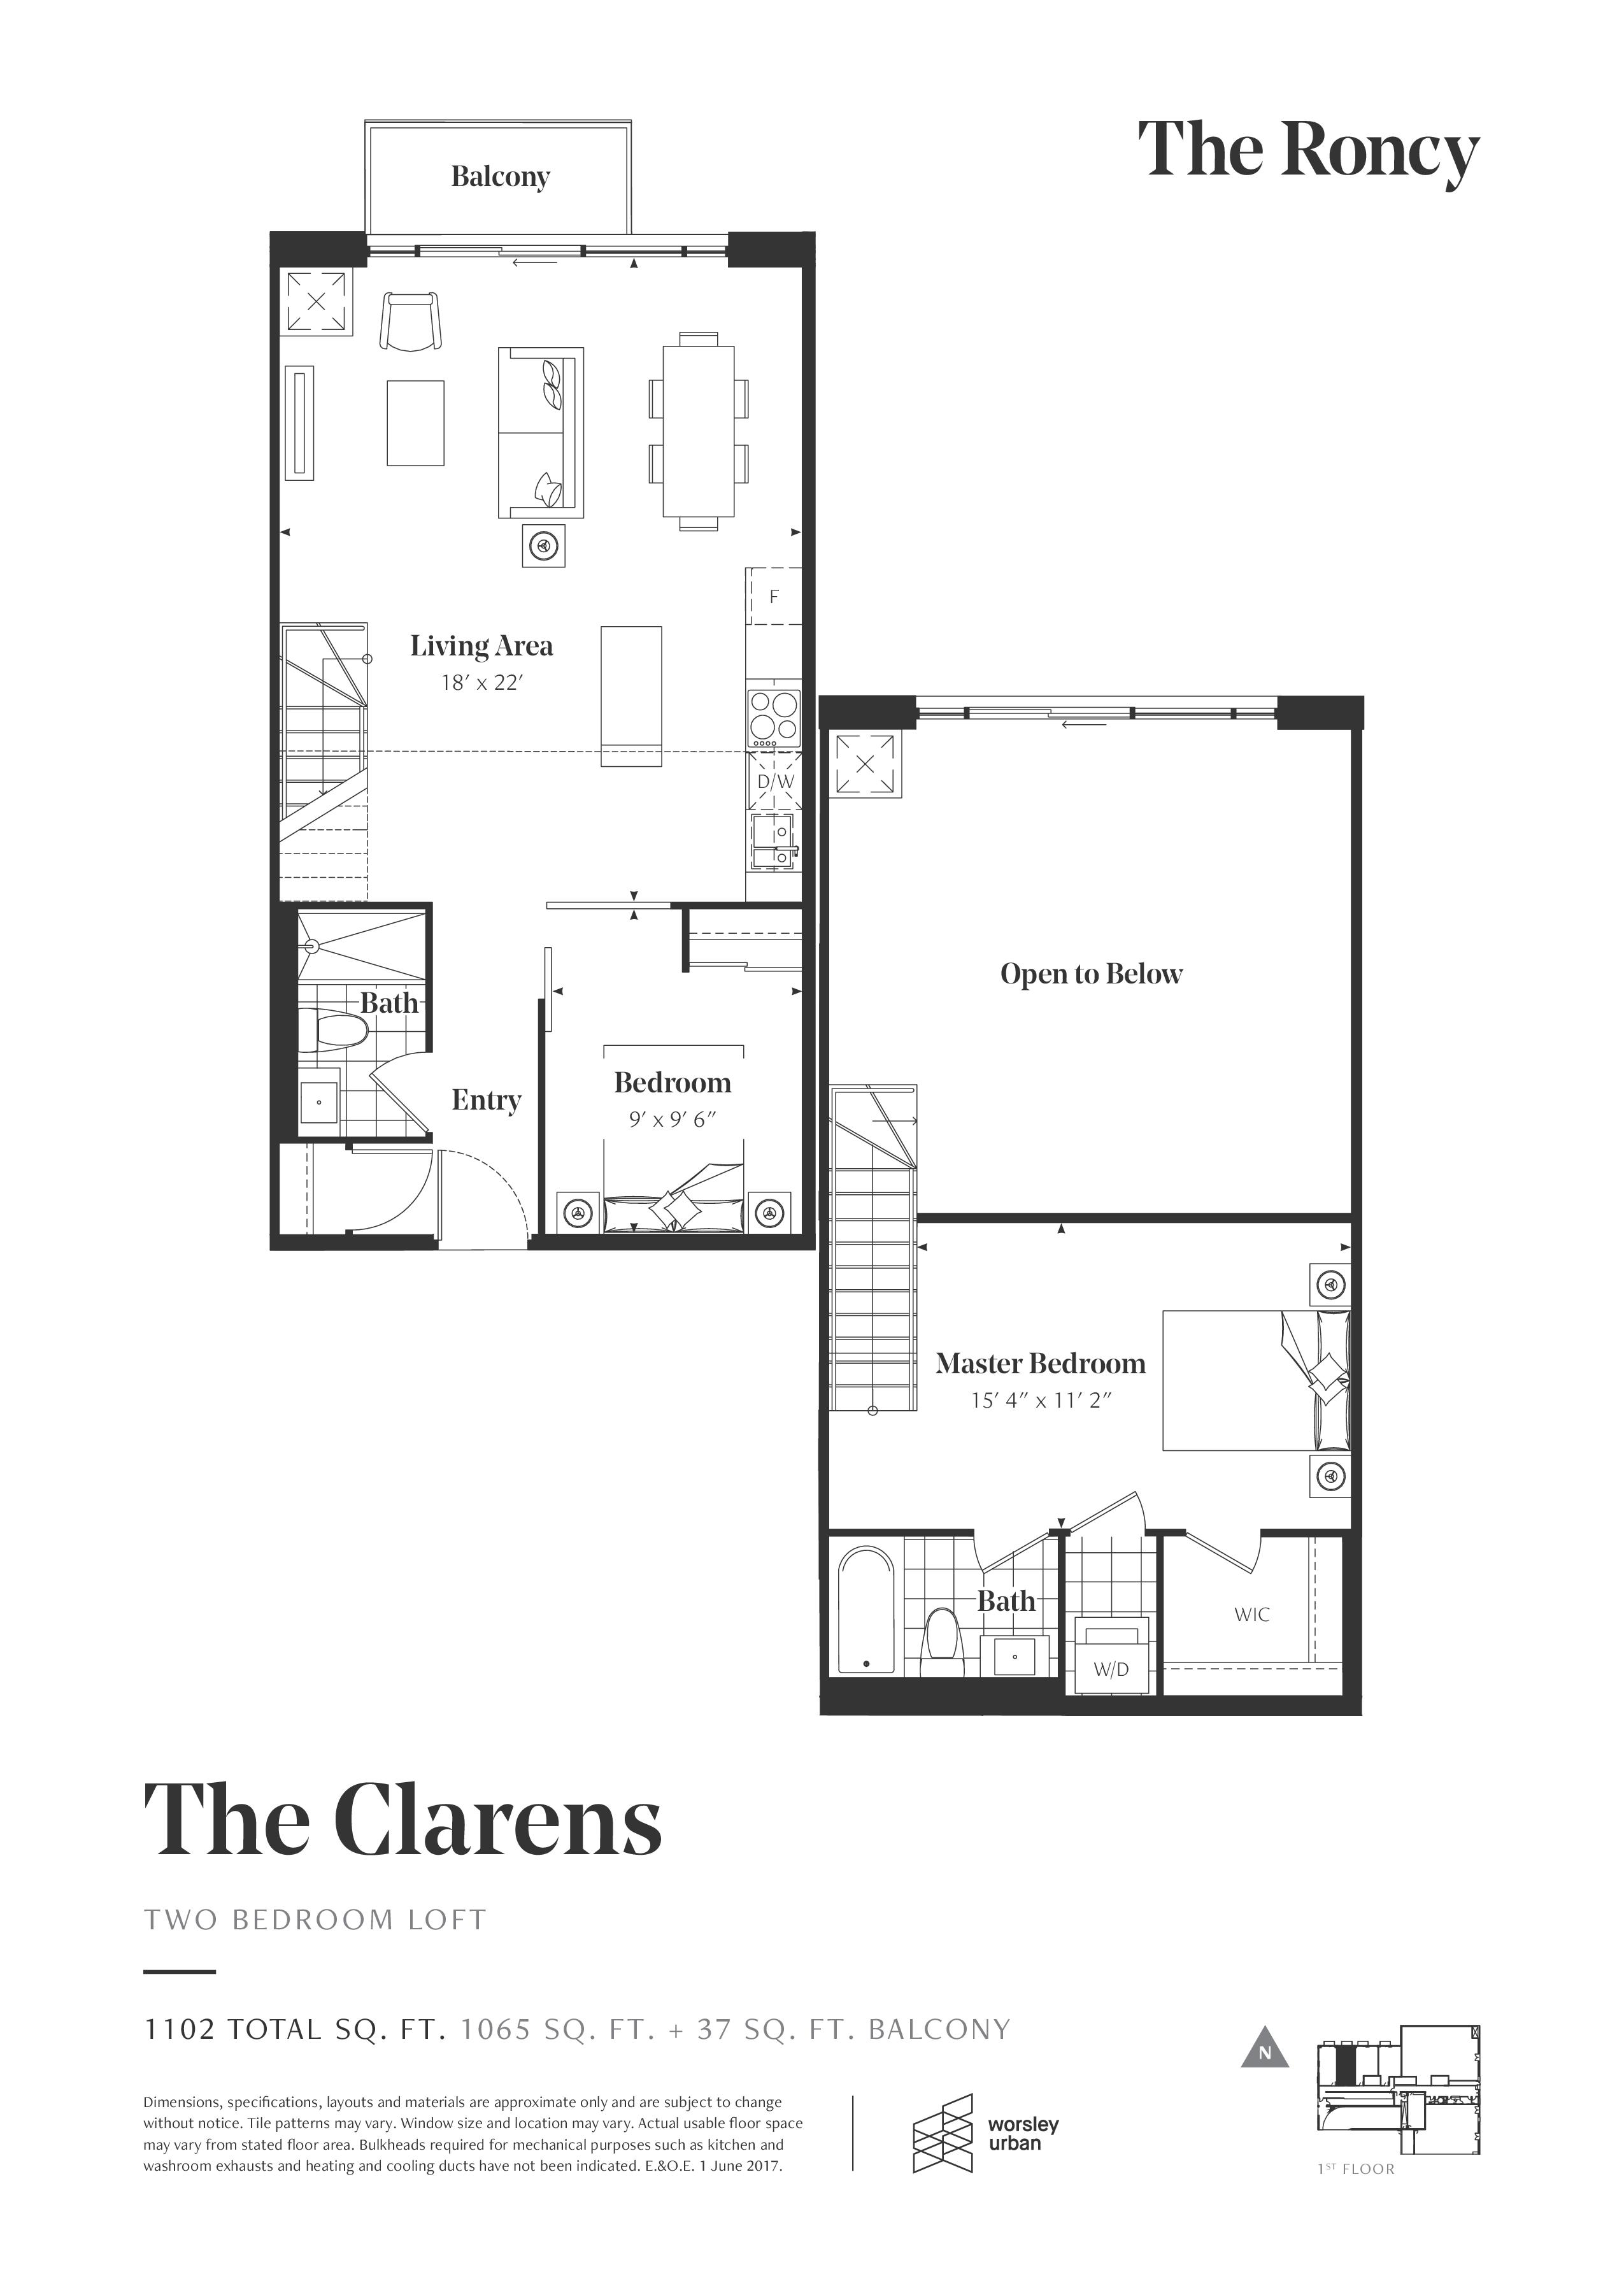 The Clarens